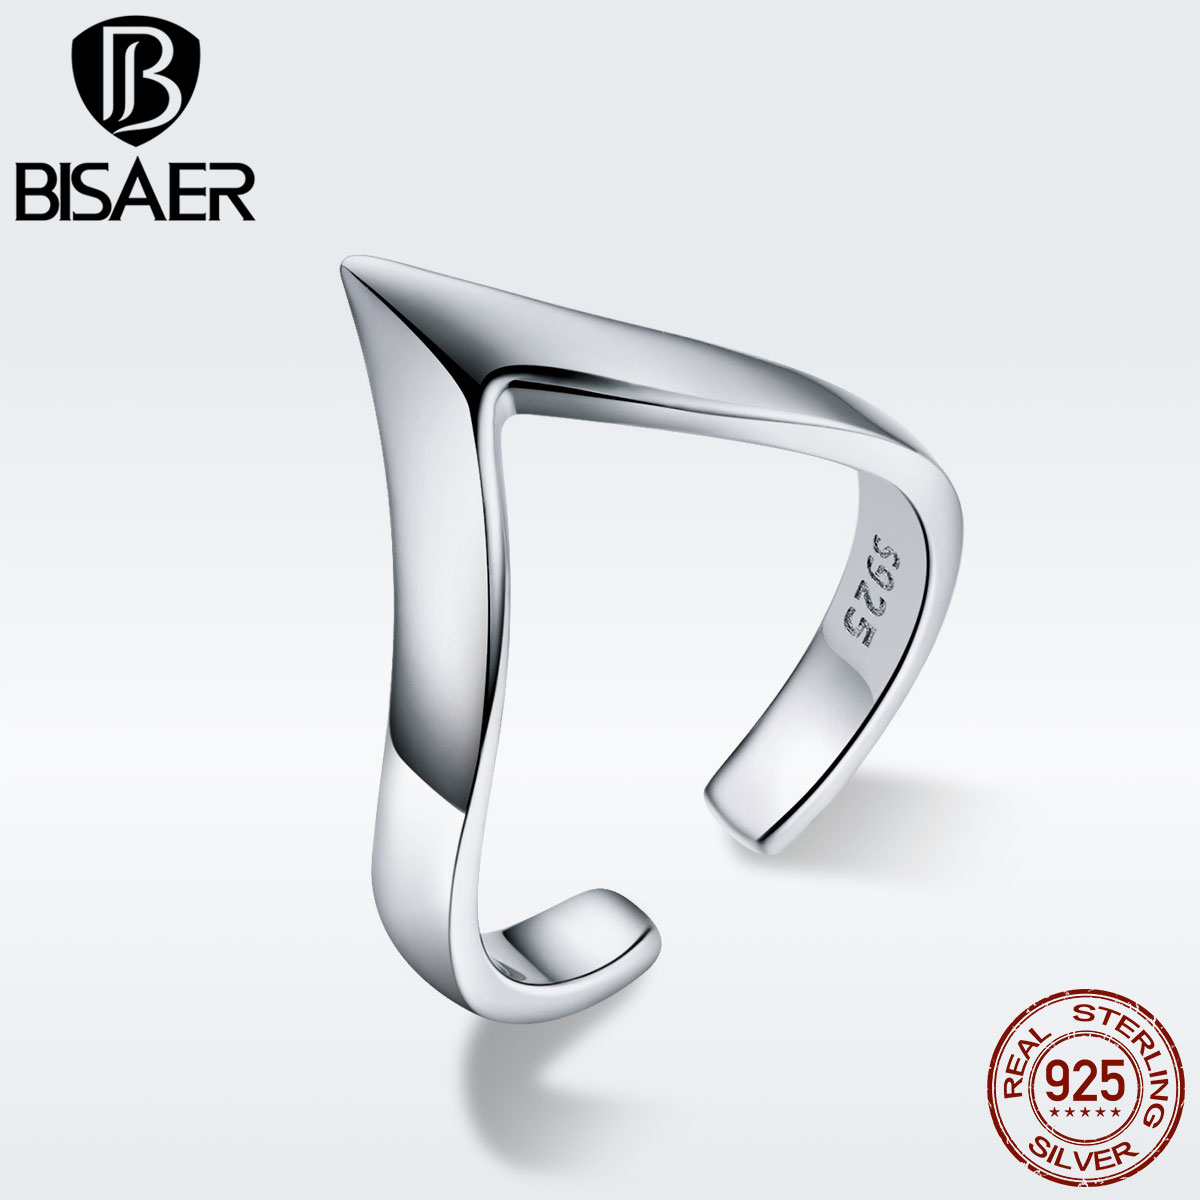 BISAER Genuine 925 Sterling Silver V Geometric V-shape Open Adjustable Rings For Women And Man Fashion Statement Jewelry GXR470